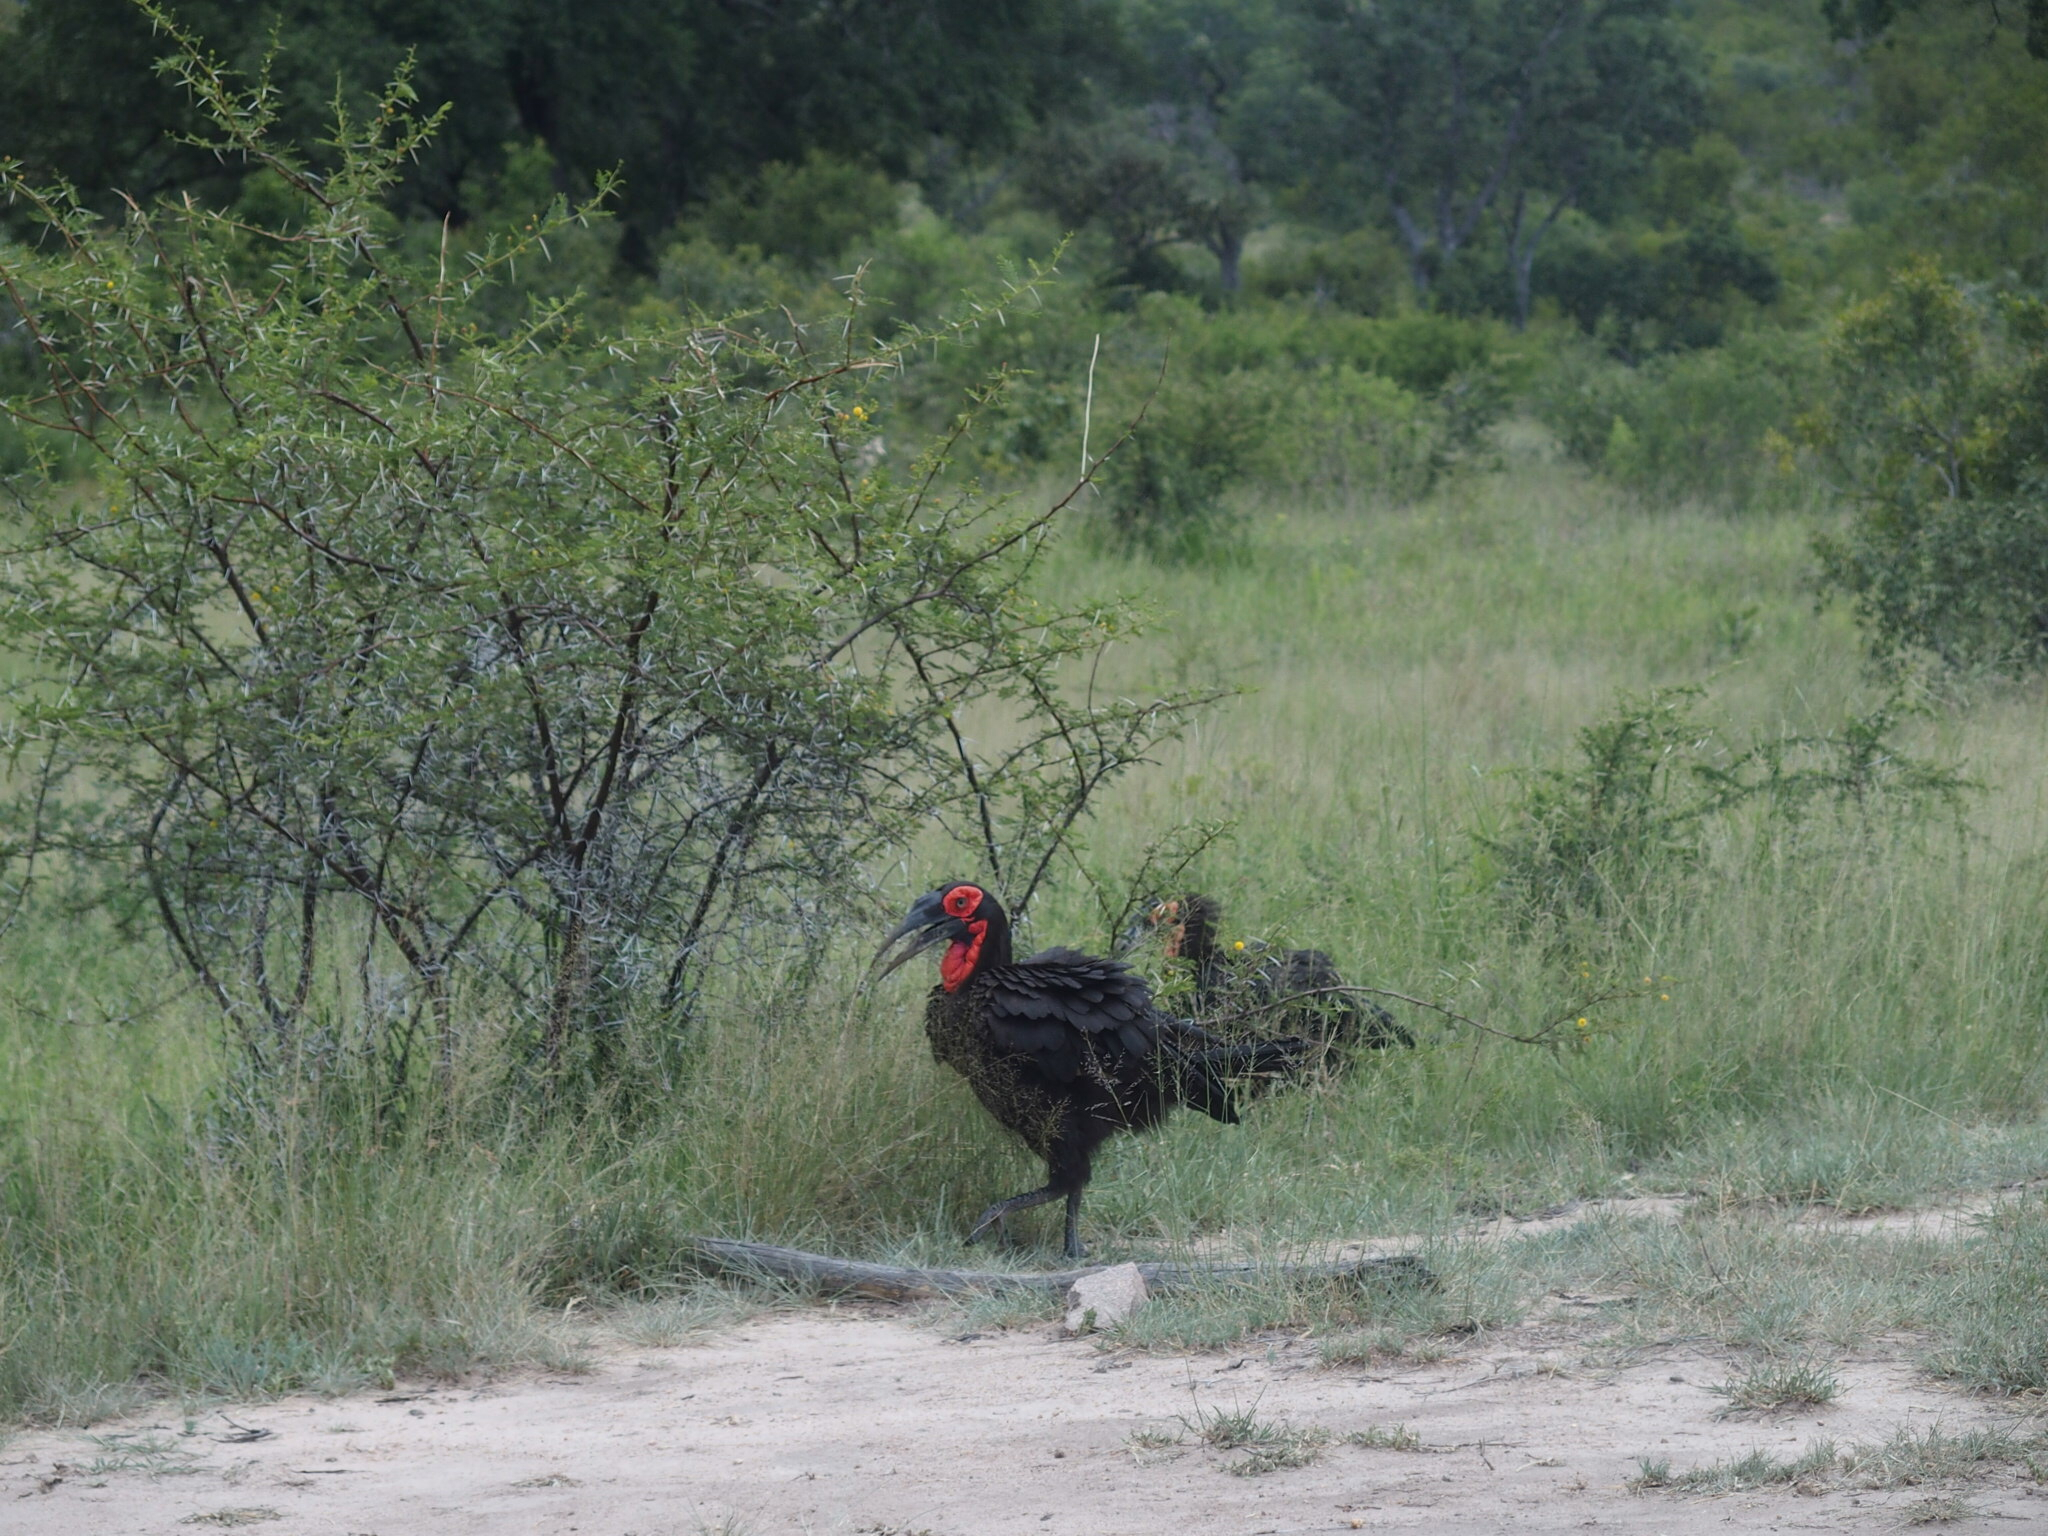 We saw several birds with colorful heads and necks, like this one.